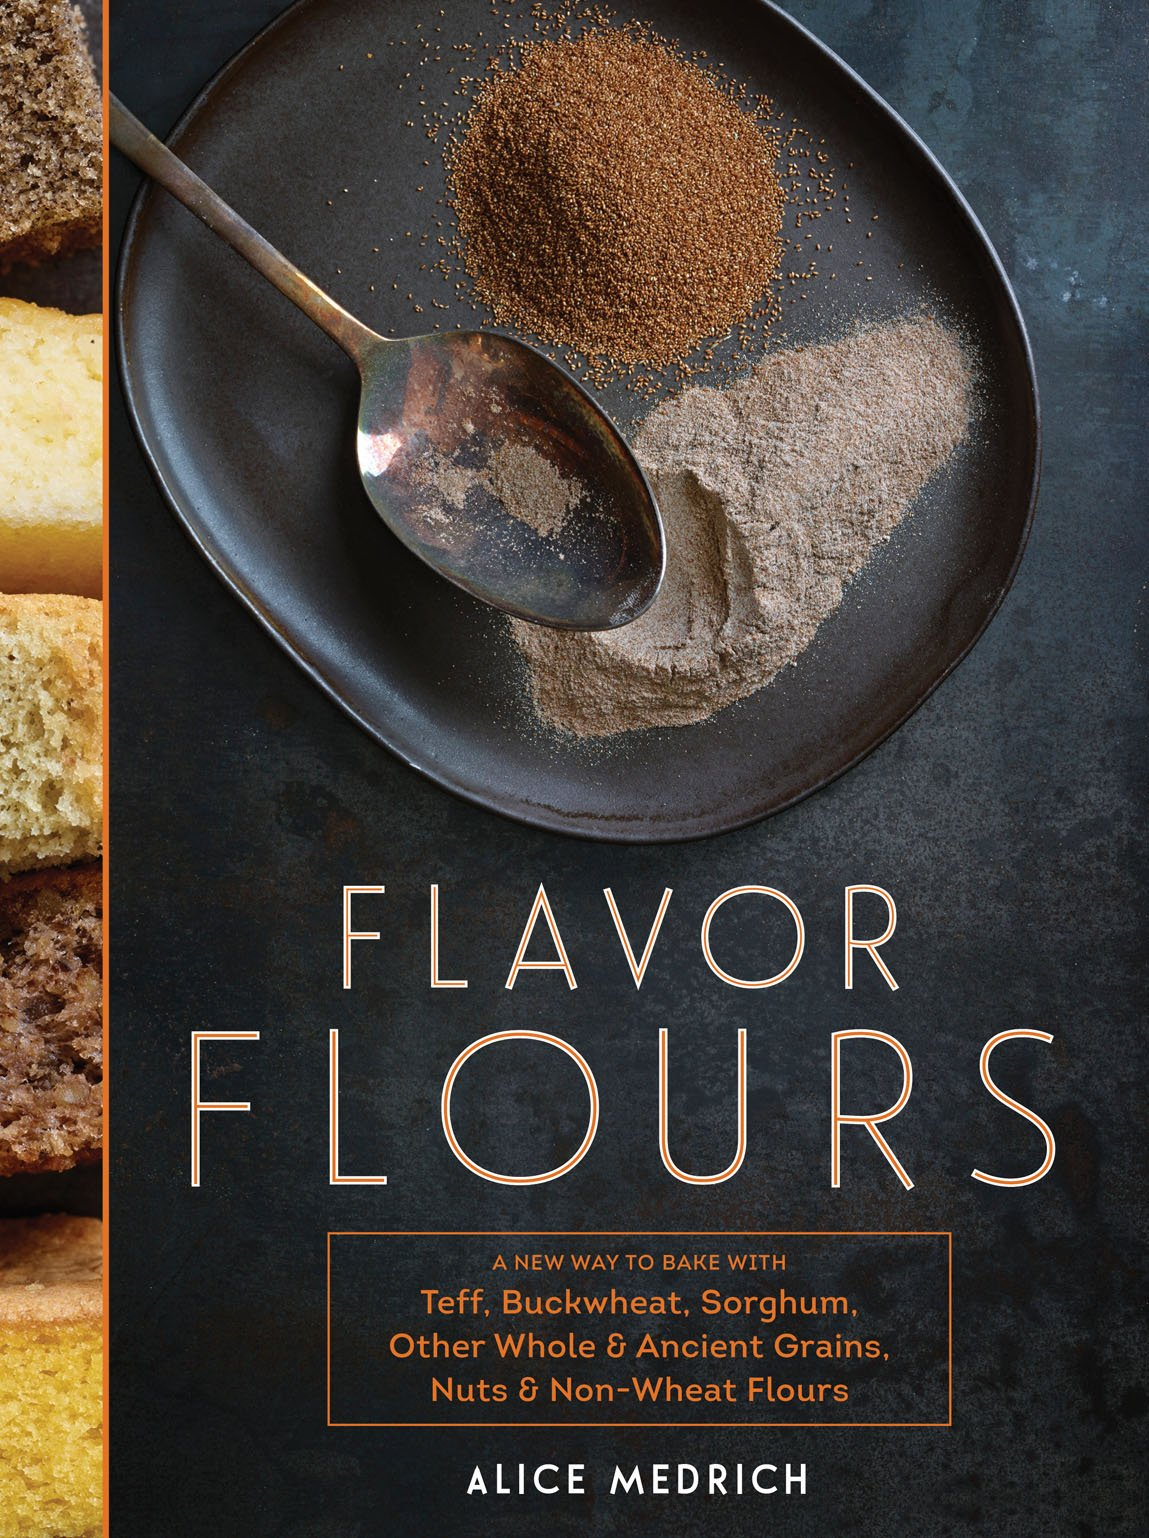 Flavor Flours: A New Way to Bake with Teff, Buckwheat, Sorghum, Other Whole & Ancient Grains, Nuts & Non-Wheat Flours by Artisan